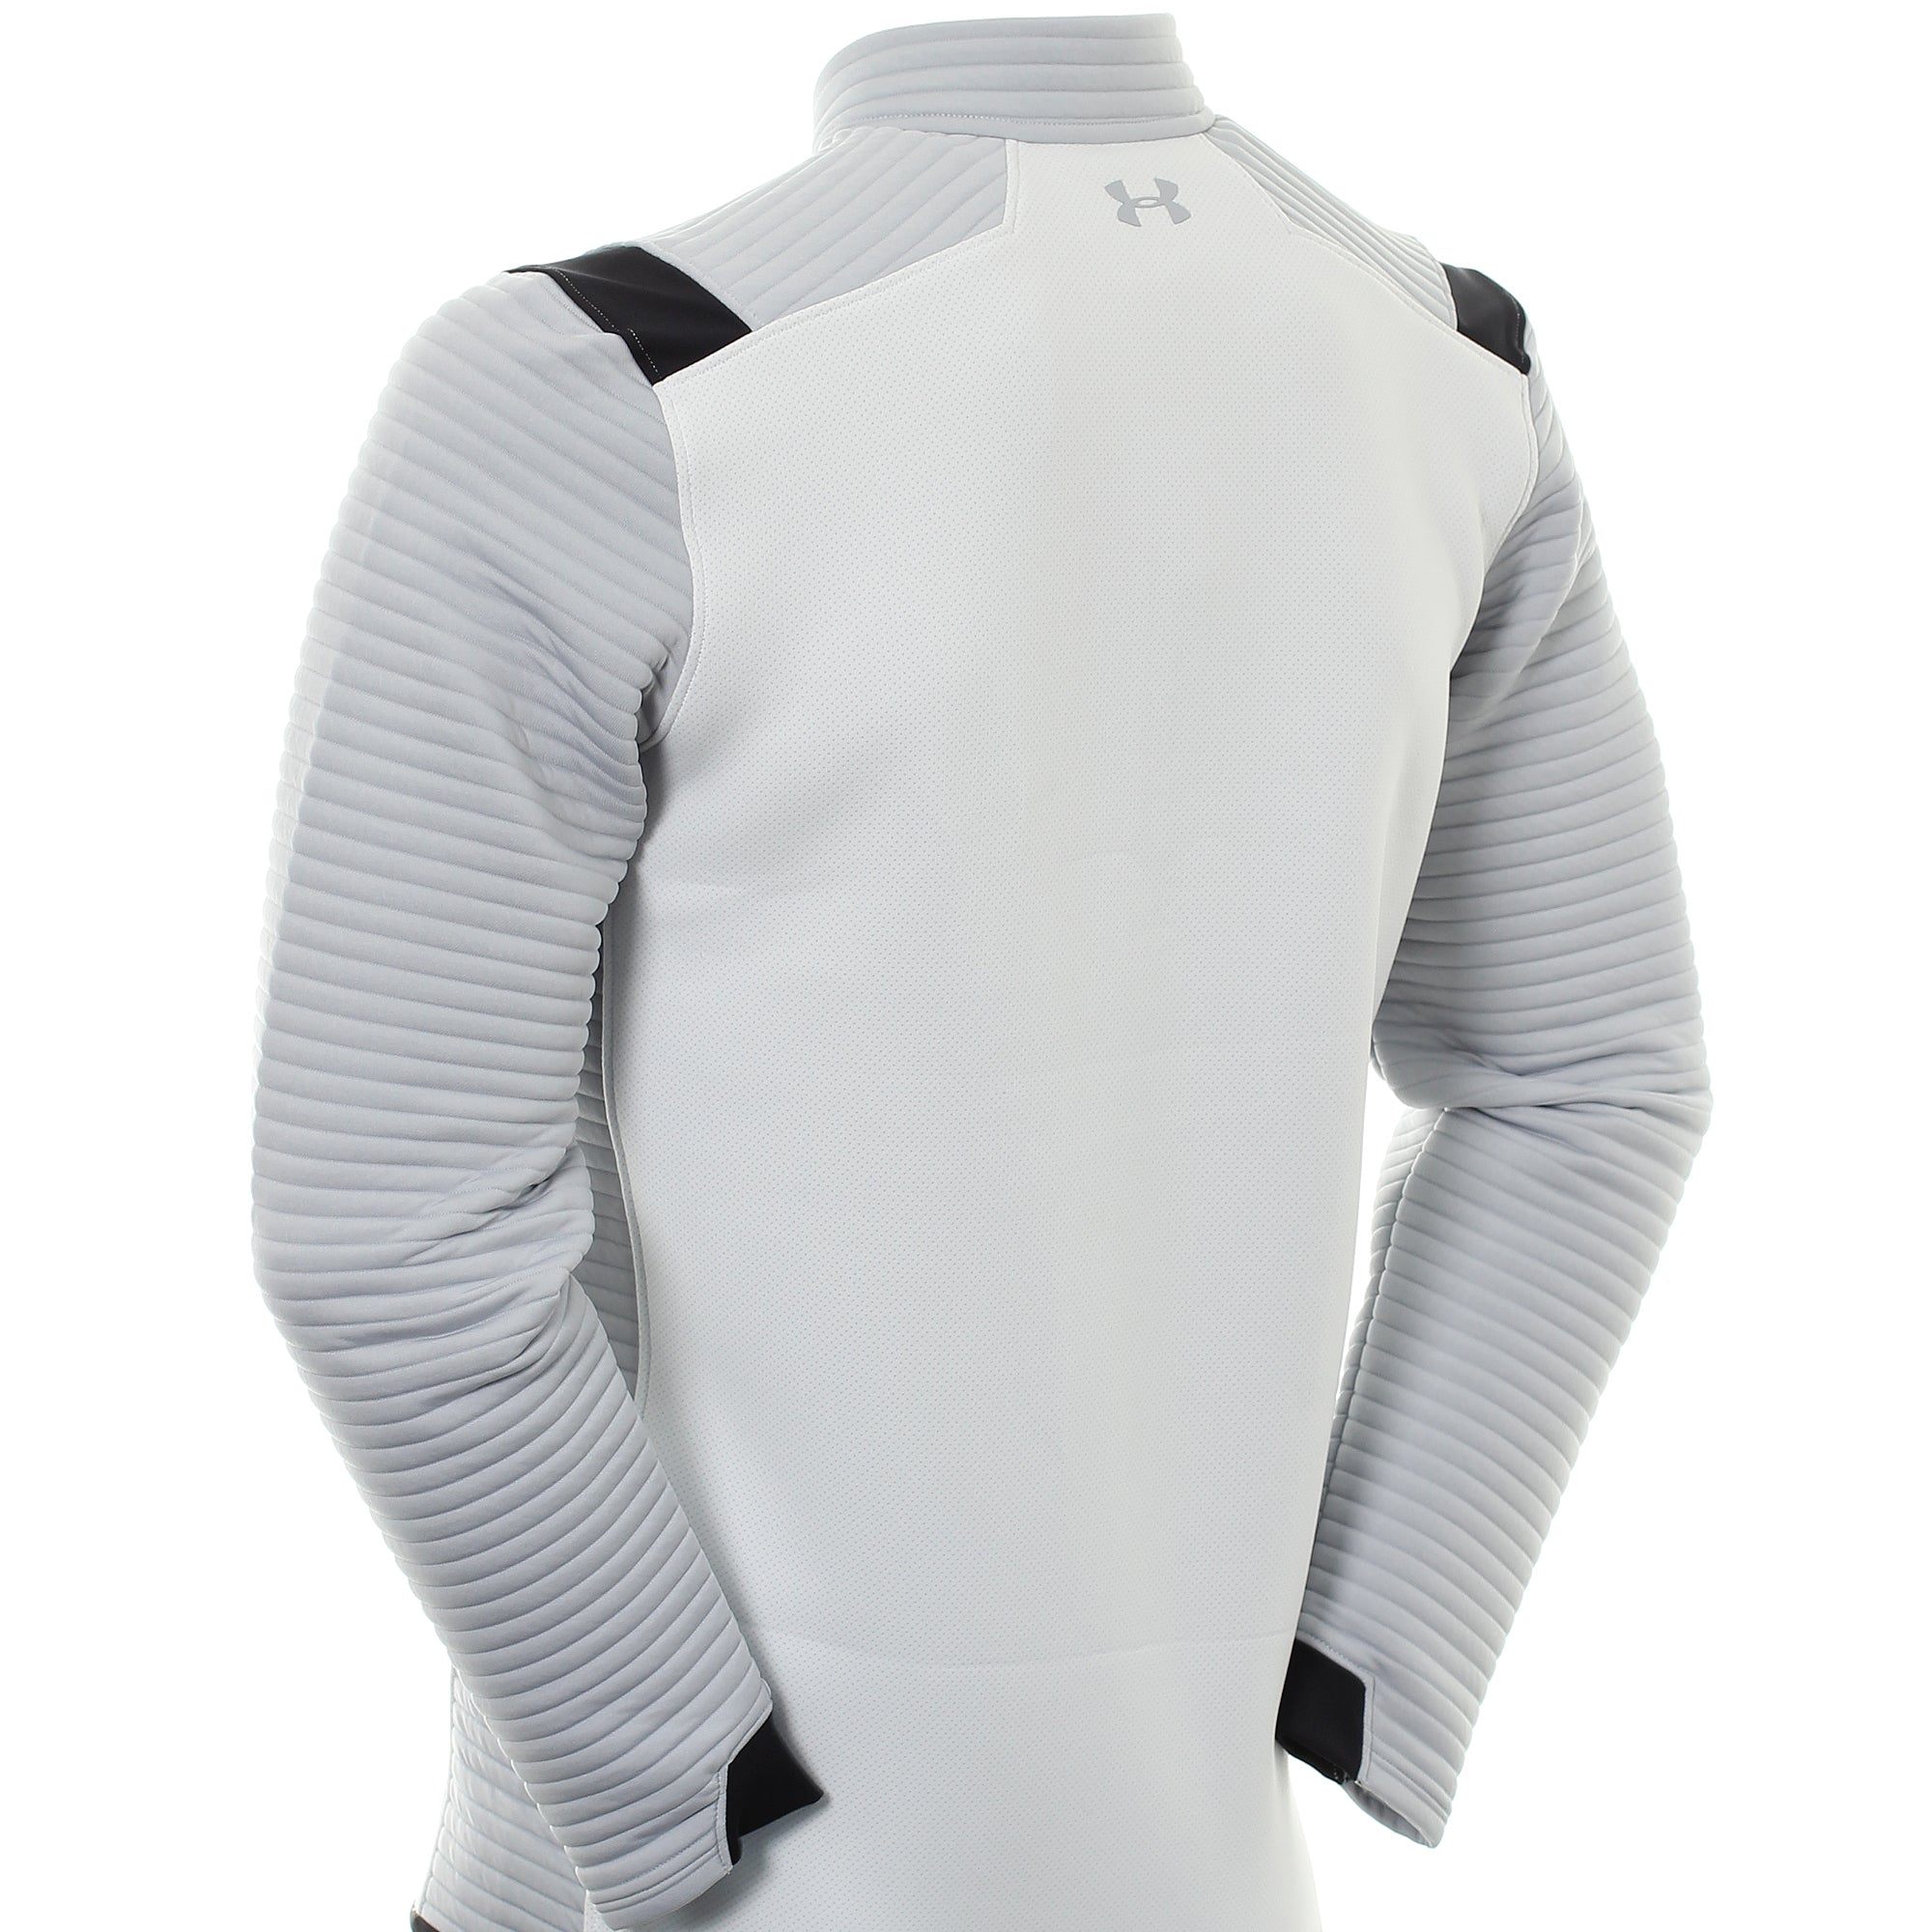 Under Armour Golf Storm Daytona 1/2 Zip 1317341